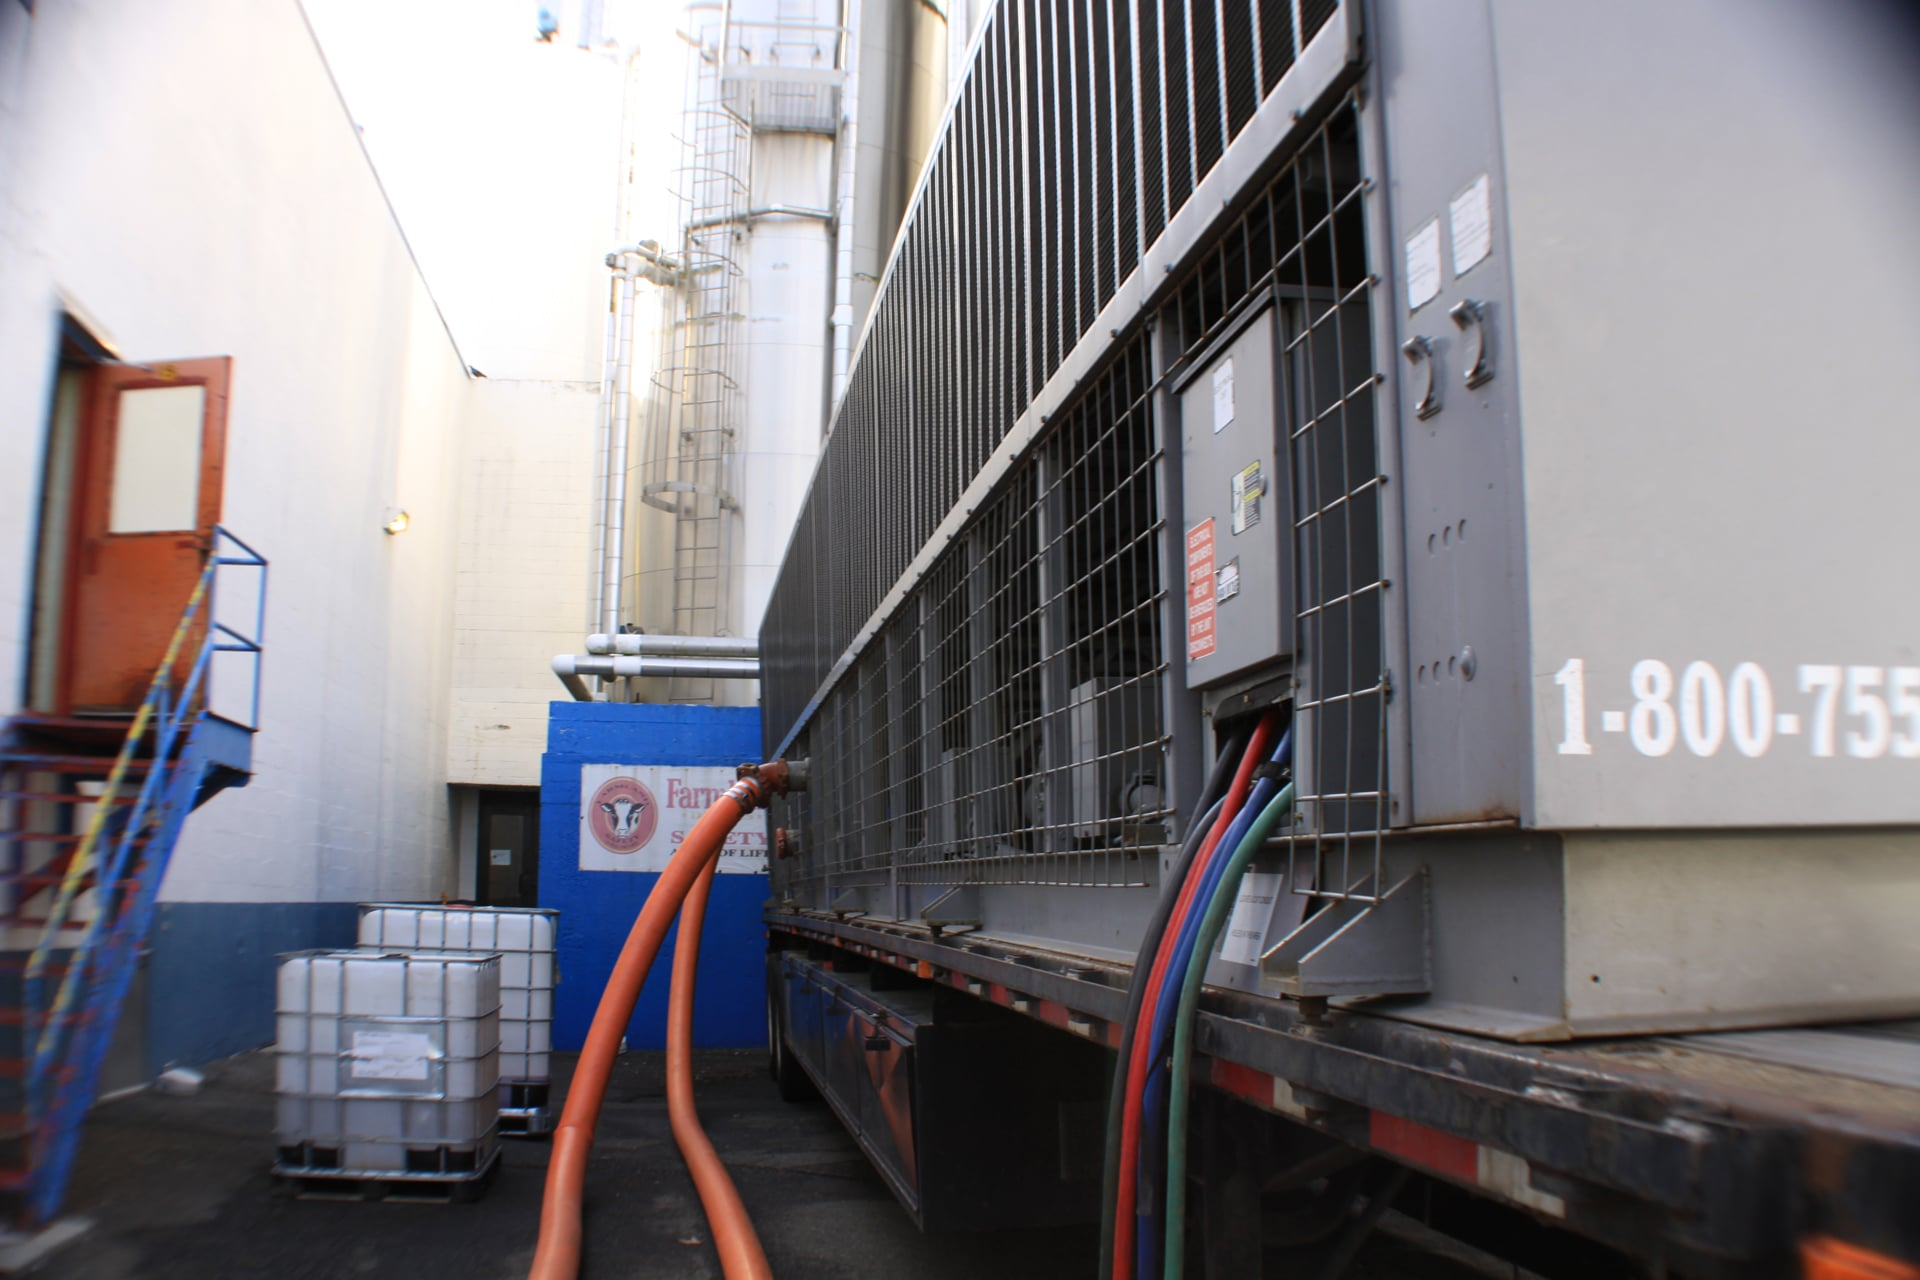 Temporary Chiller Wilkes-Barre PA, Air Cooled Chiller Rental Wilkes-Barre PA